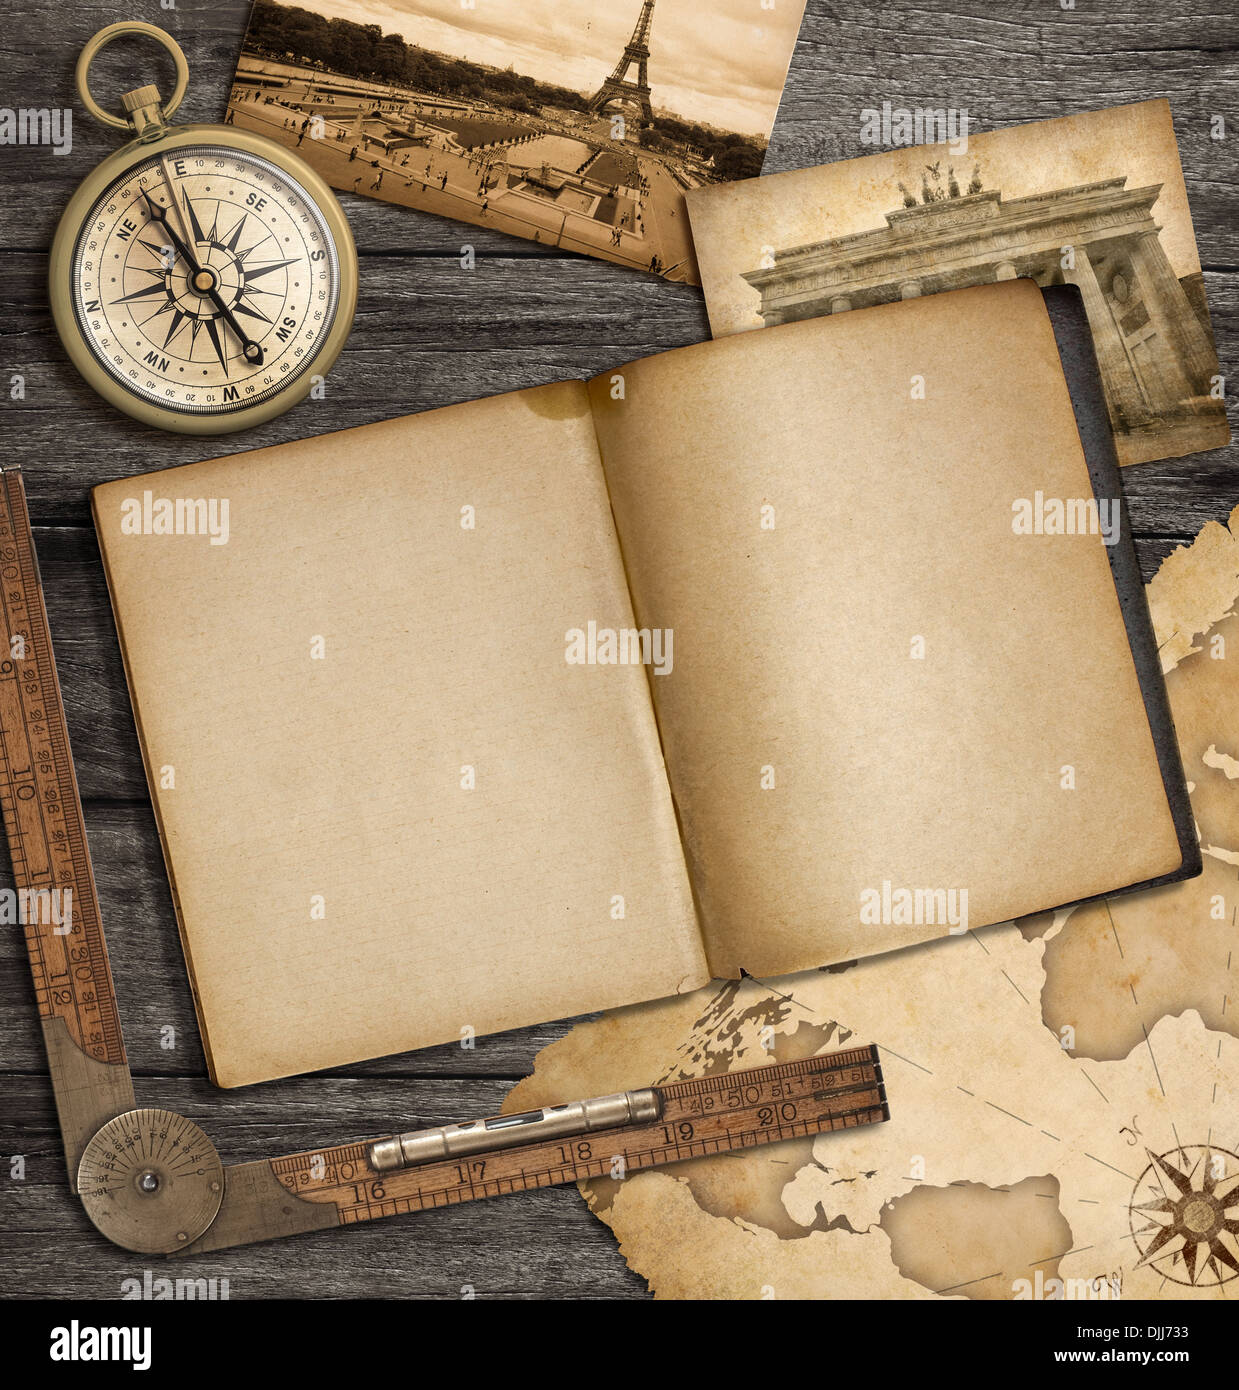 adventure nautical background with vintage map, copybook and compass - Stock Image